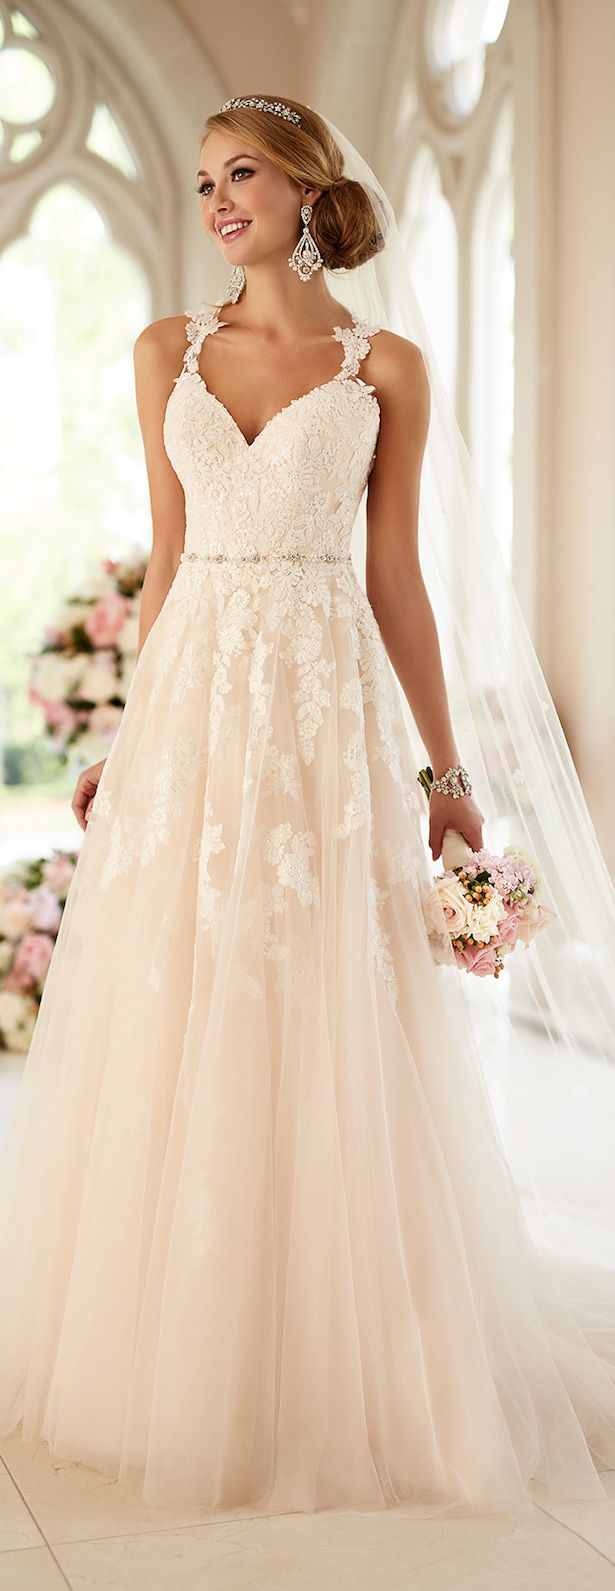 25 best ideas about spring wedding dresses on pinterest for A pretty wedding dress